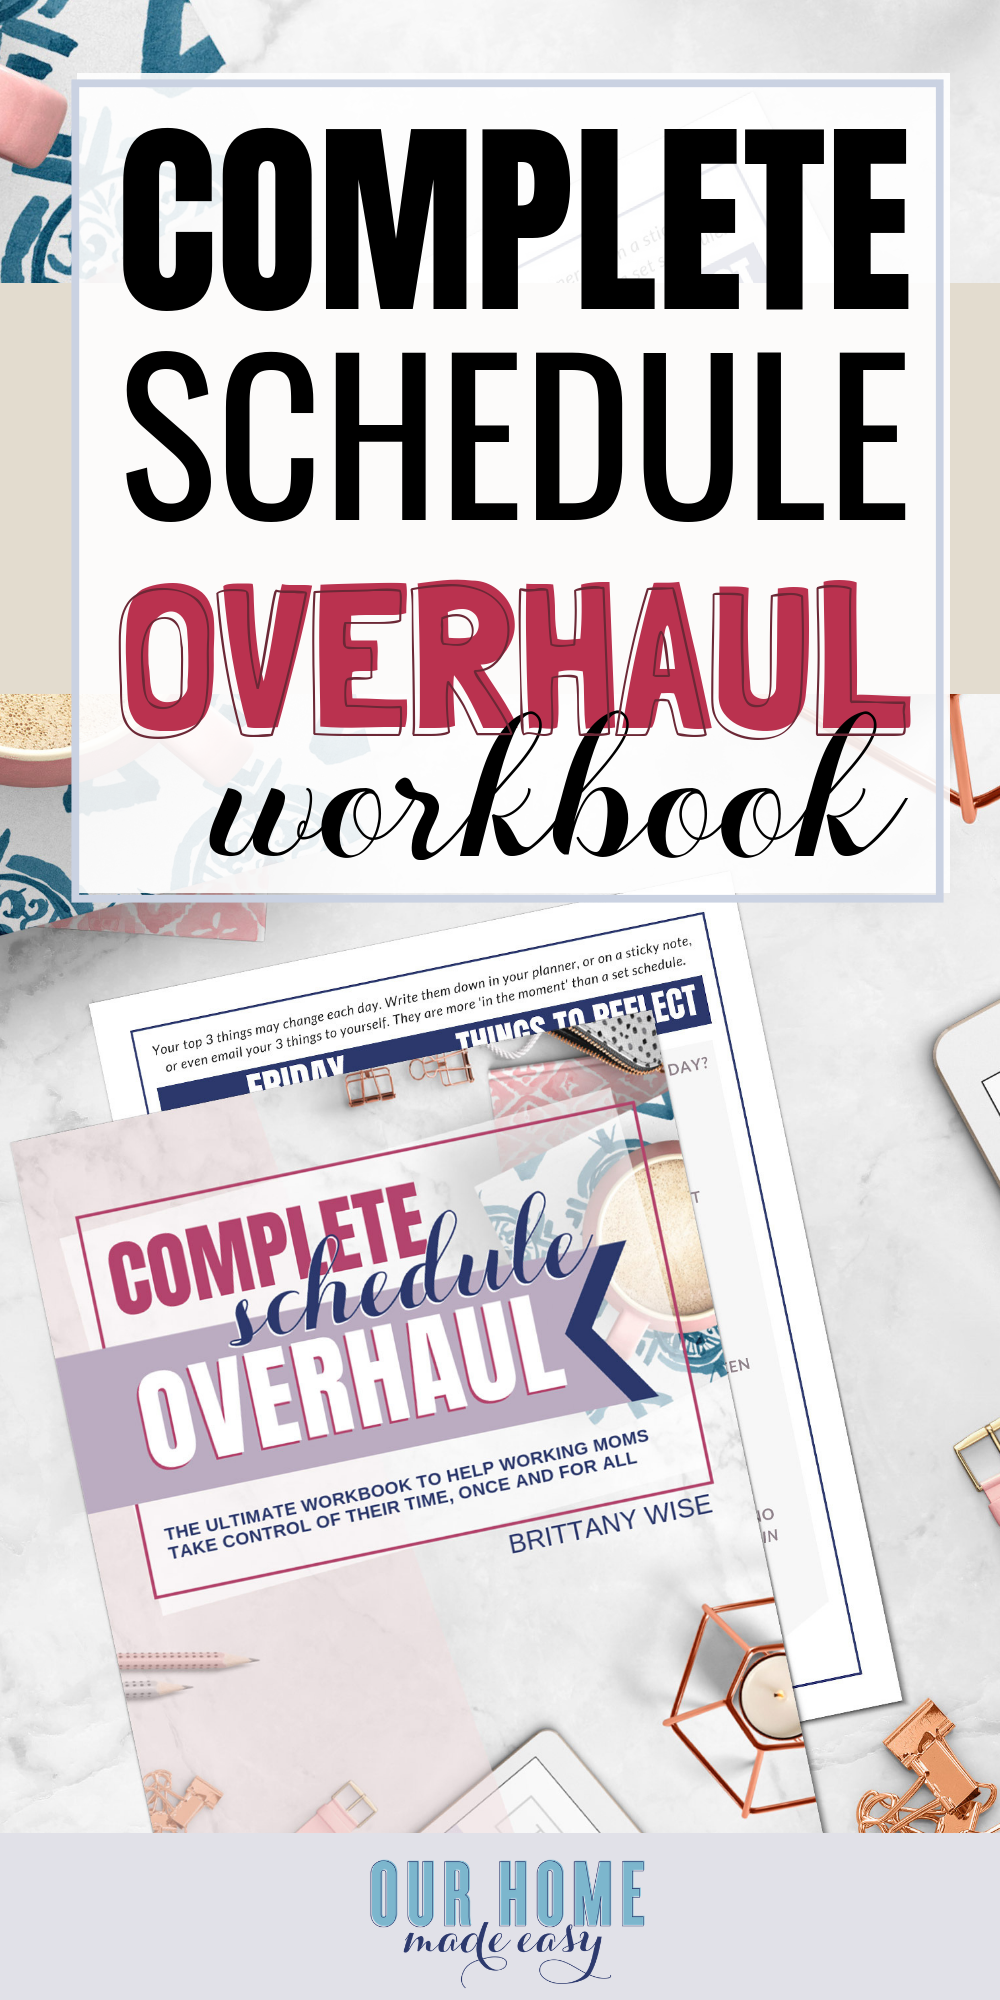 The Complete Schedule Overhaul is the ultimate shortcut-making tool to help working moms take control of their home life & work time, once and for all... #organization #home #mom #ourhomemadeeasy